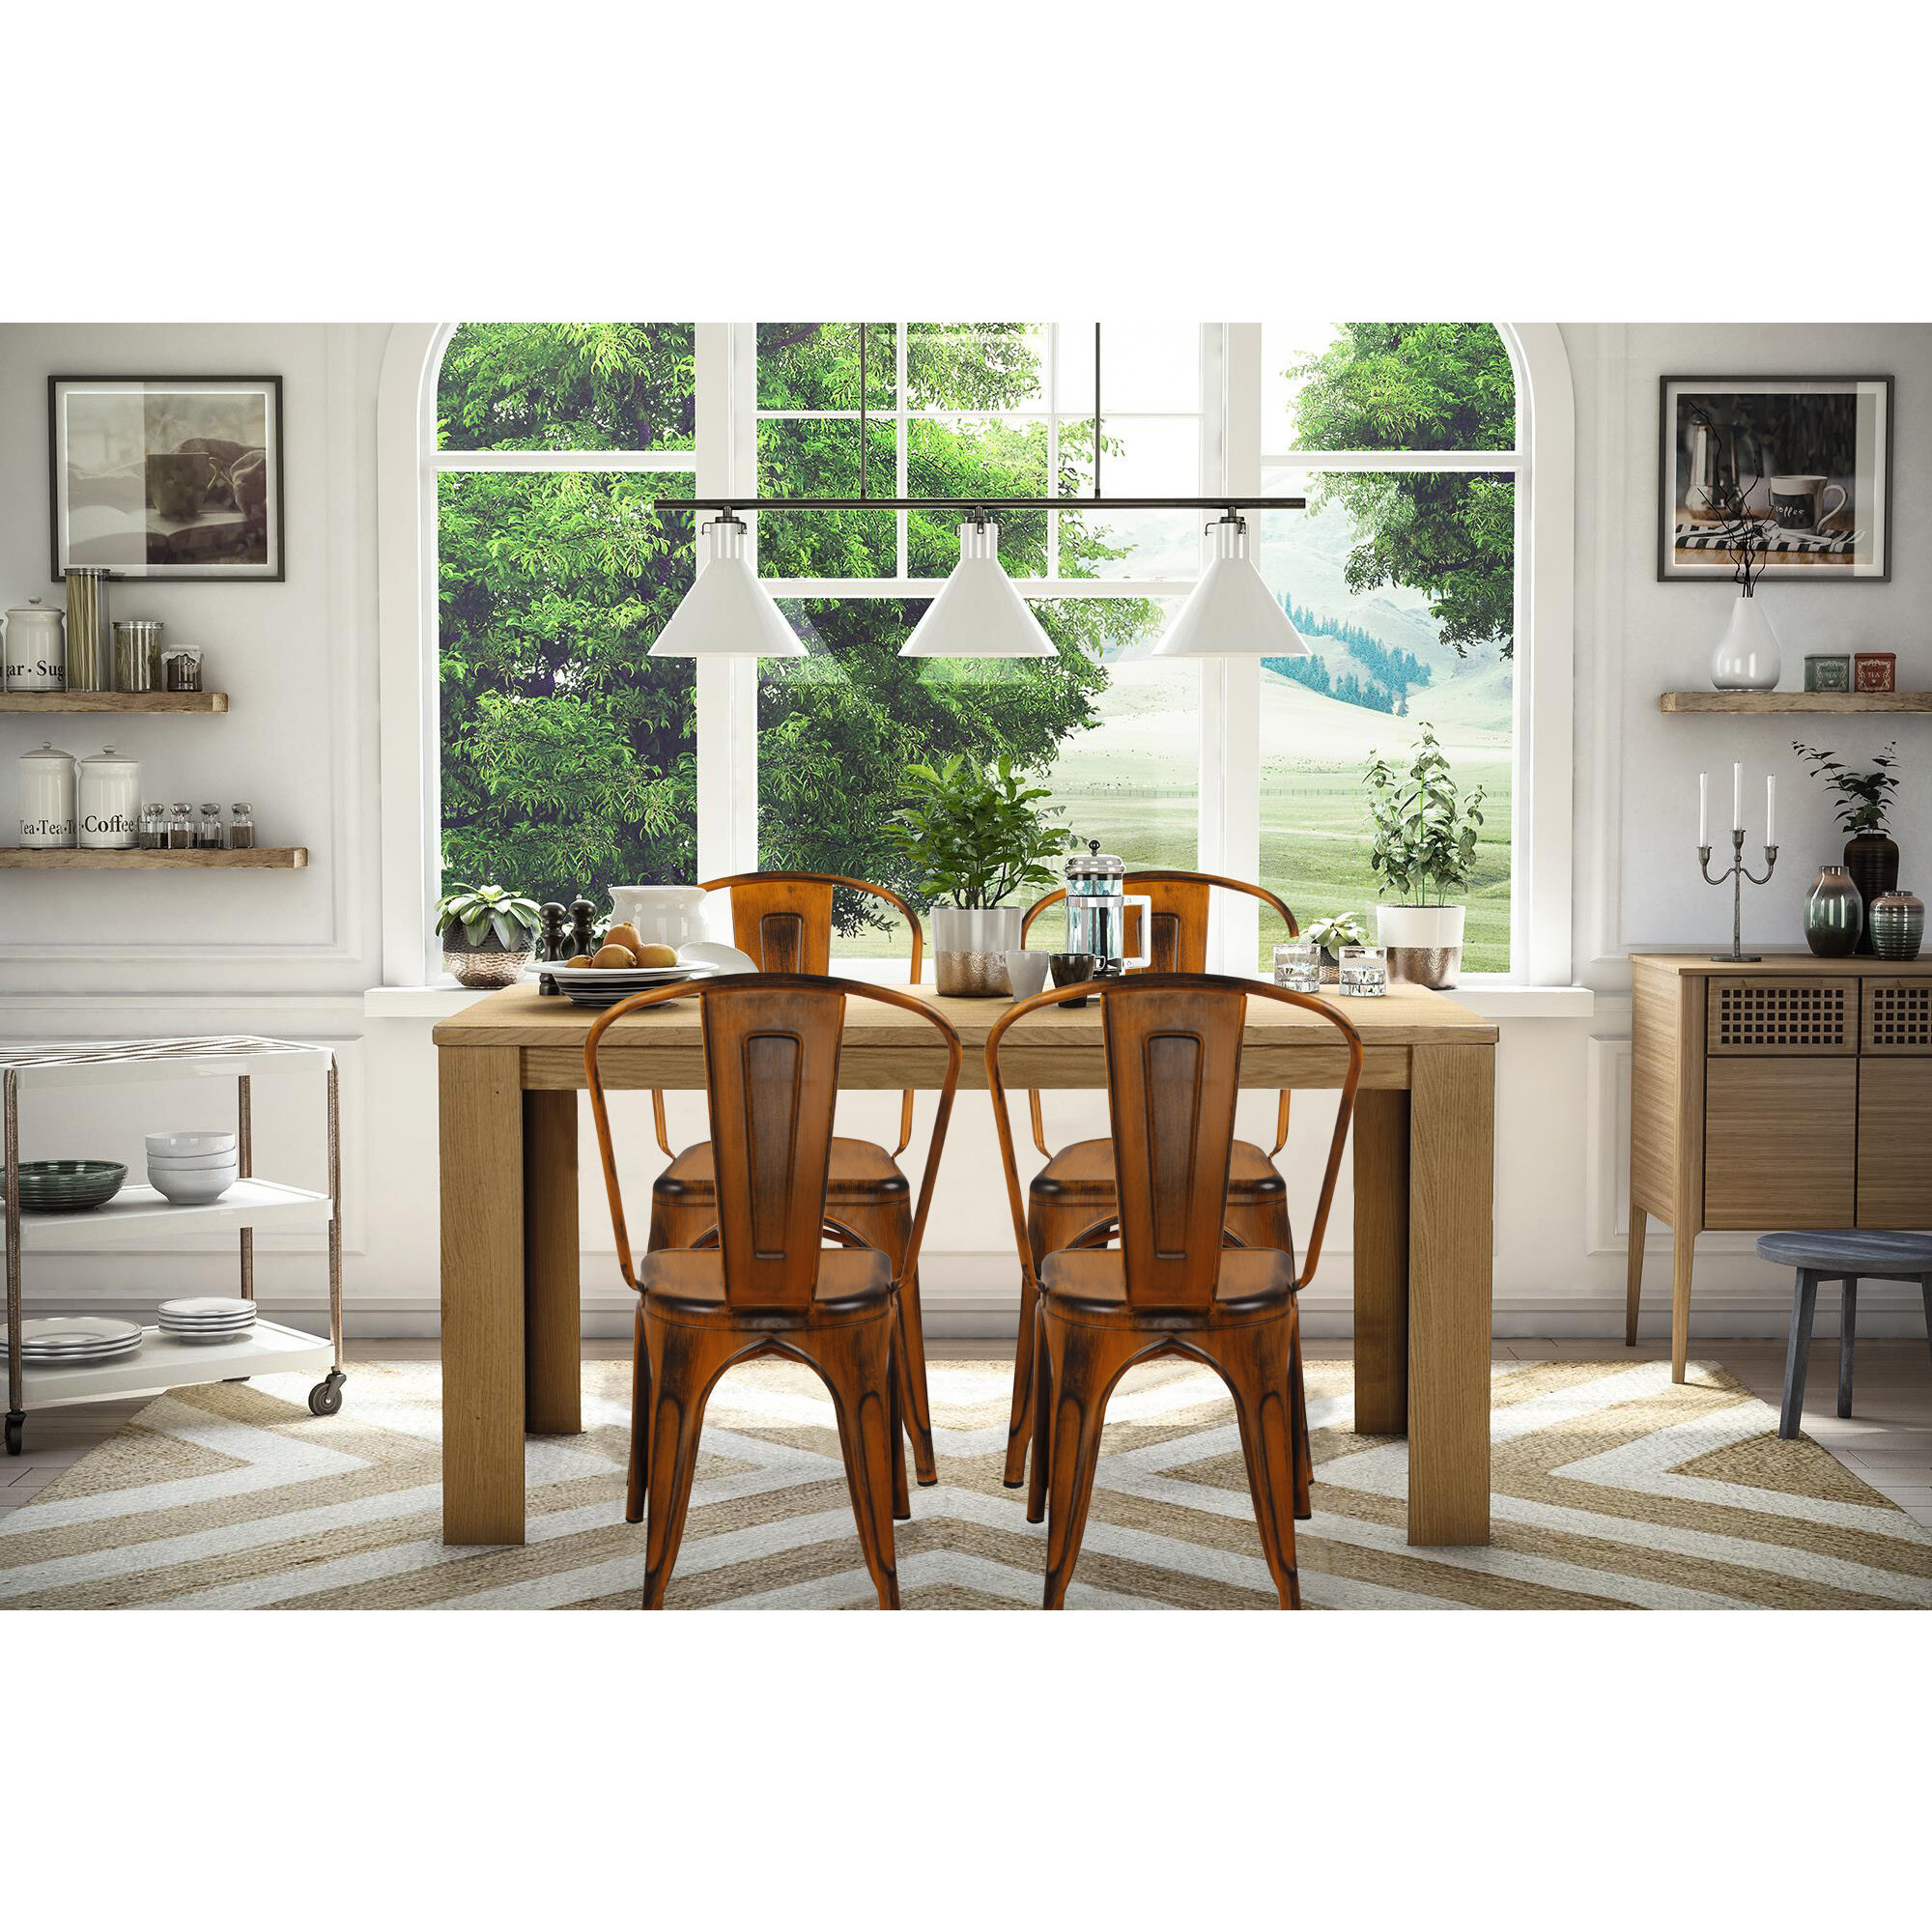 Commercial Use Williston Forge Kitchen Dining Chairs You Ll Love In 2021 Wayfair